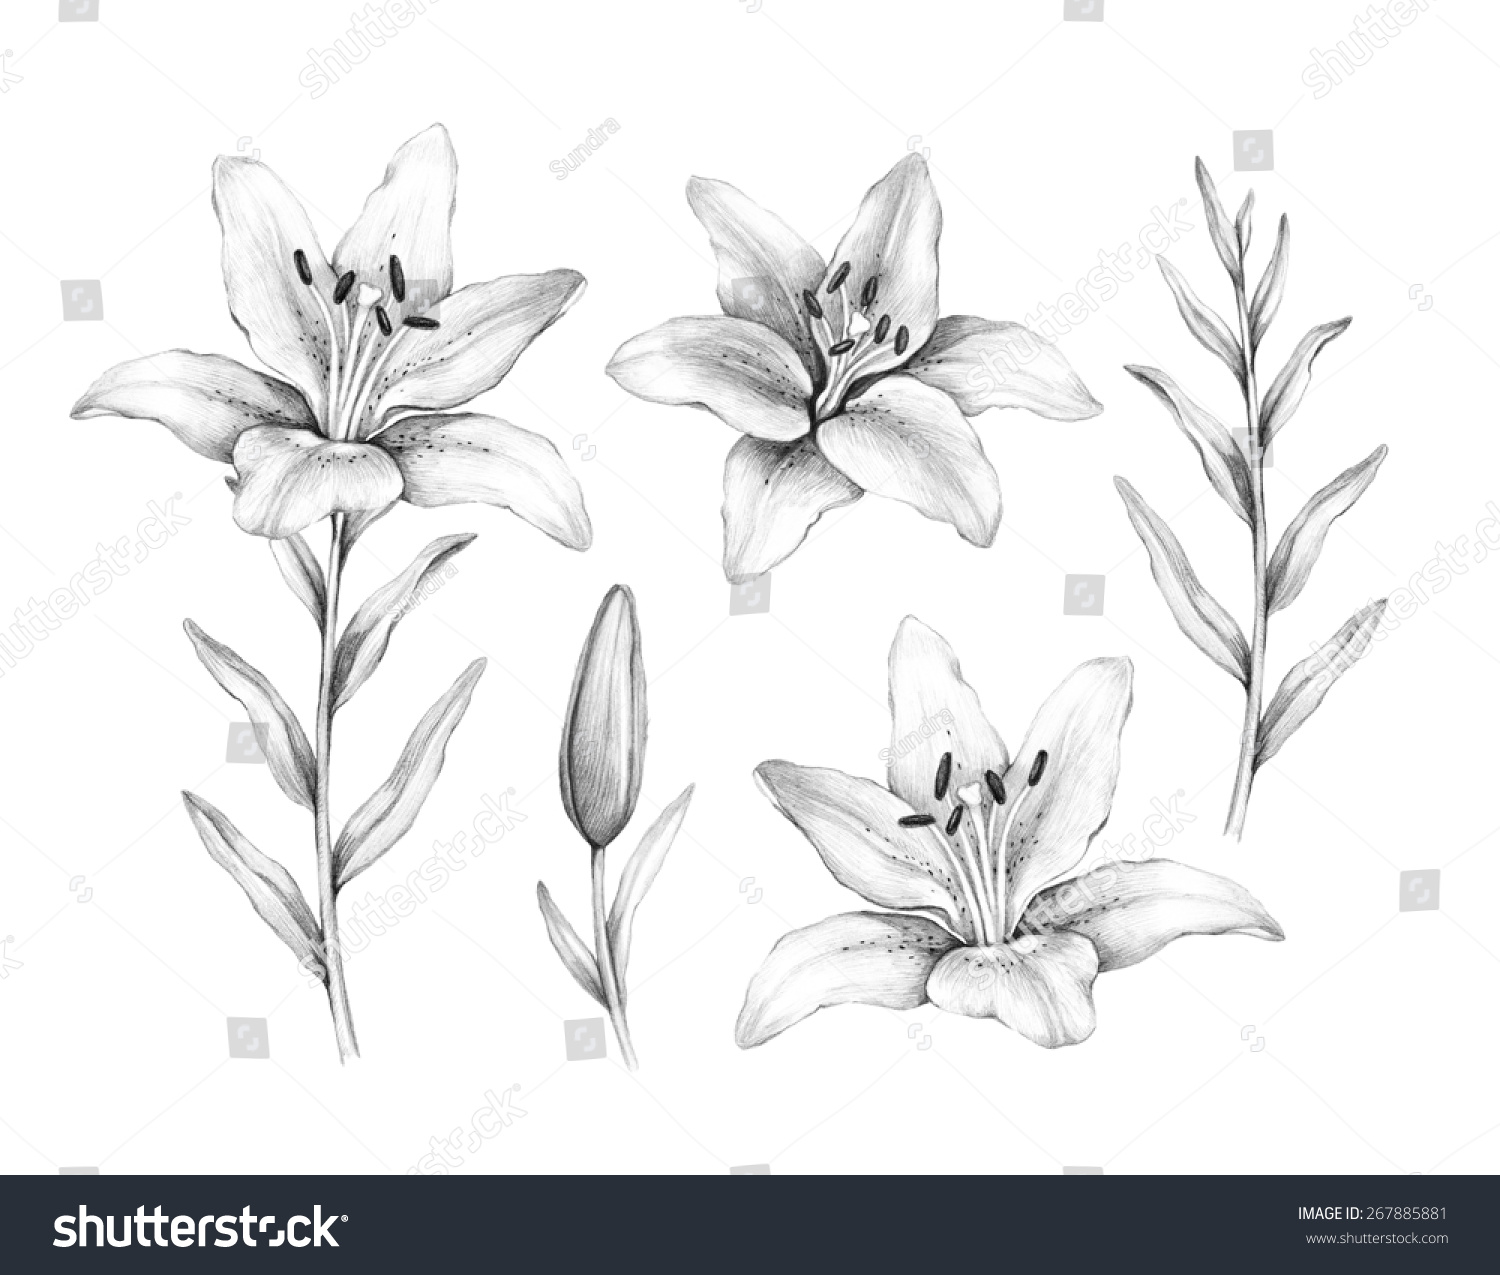 Pencil Drawing Lily Flower Stock Illustration 267885881 Shutterstock